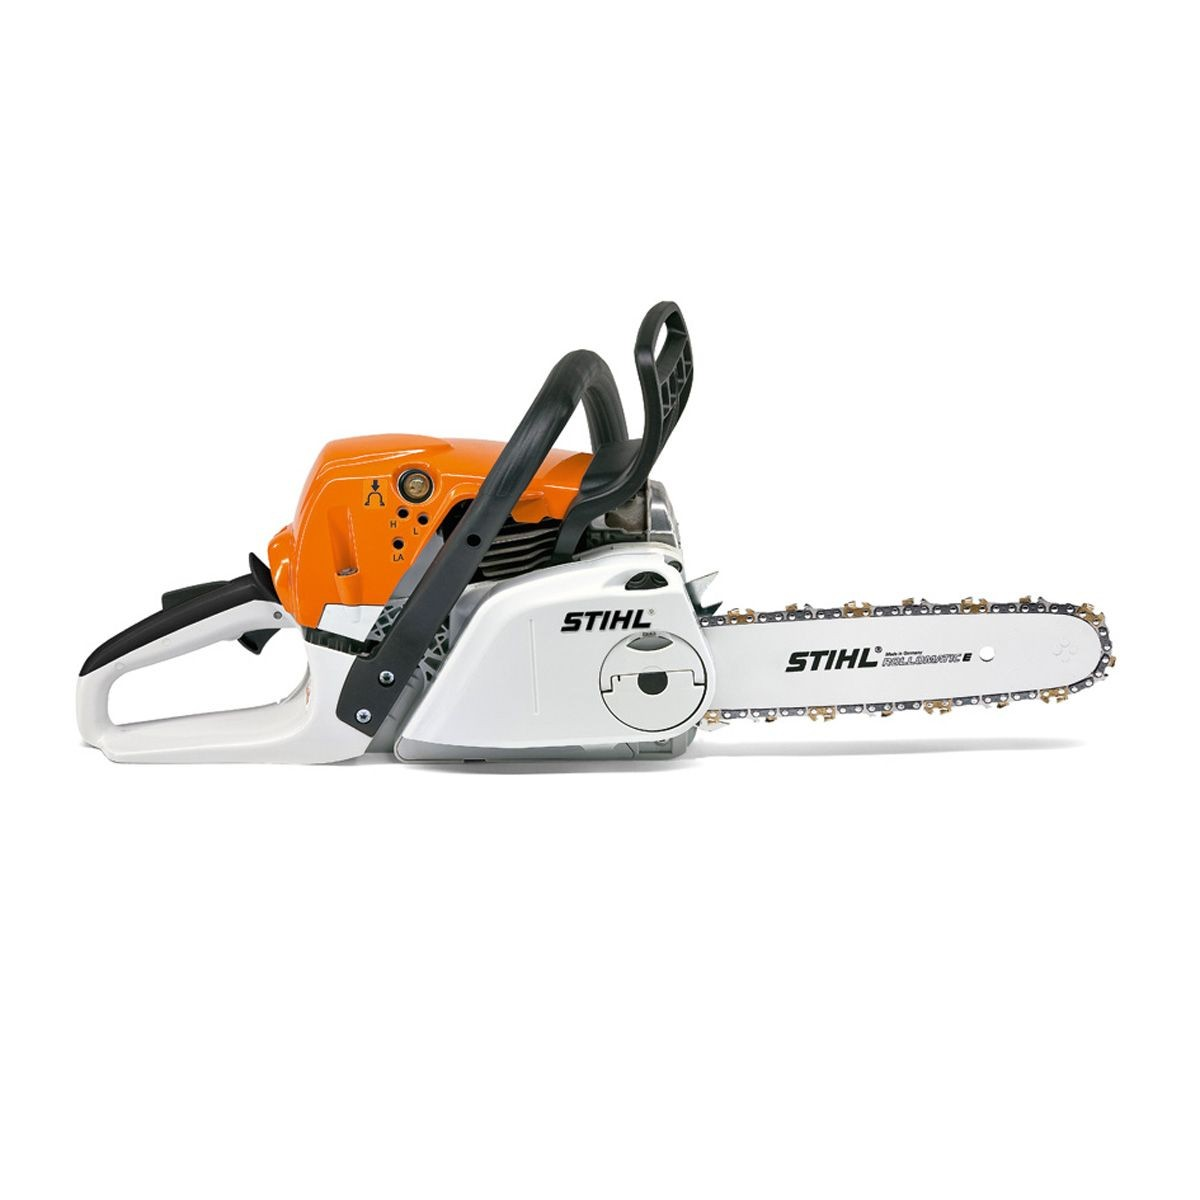 tronçonneuse ms231 c-be/40cm r (325) stihl